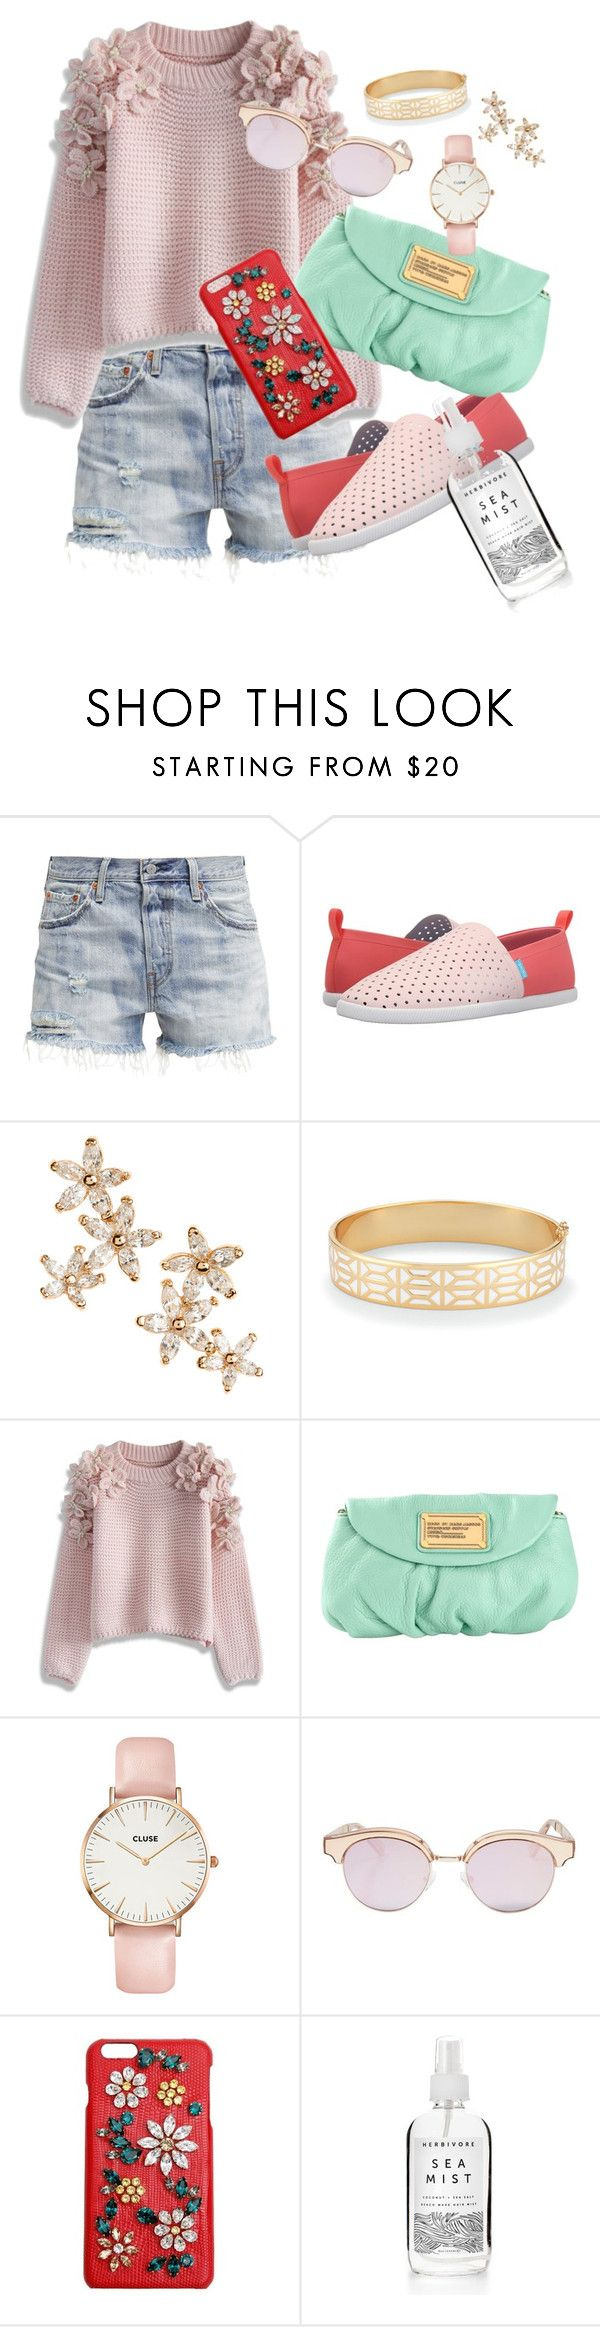 """Spring Look"" by fashion-mama-aquarius on Polyvore featuring Levi's, Native Shoes, Bonheur, Stella & Dot, Chicwish, Marc by Marc Jacobs, CLUSE, Le Specs, Dolce&Gabbana and styleset"